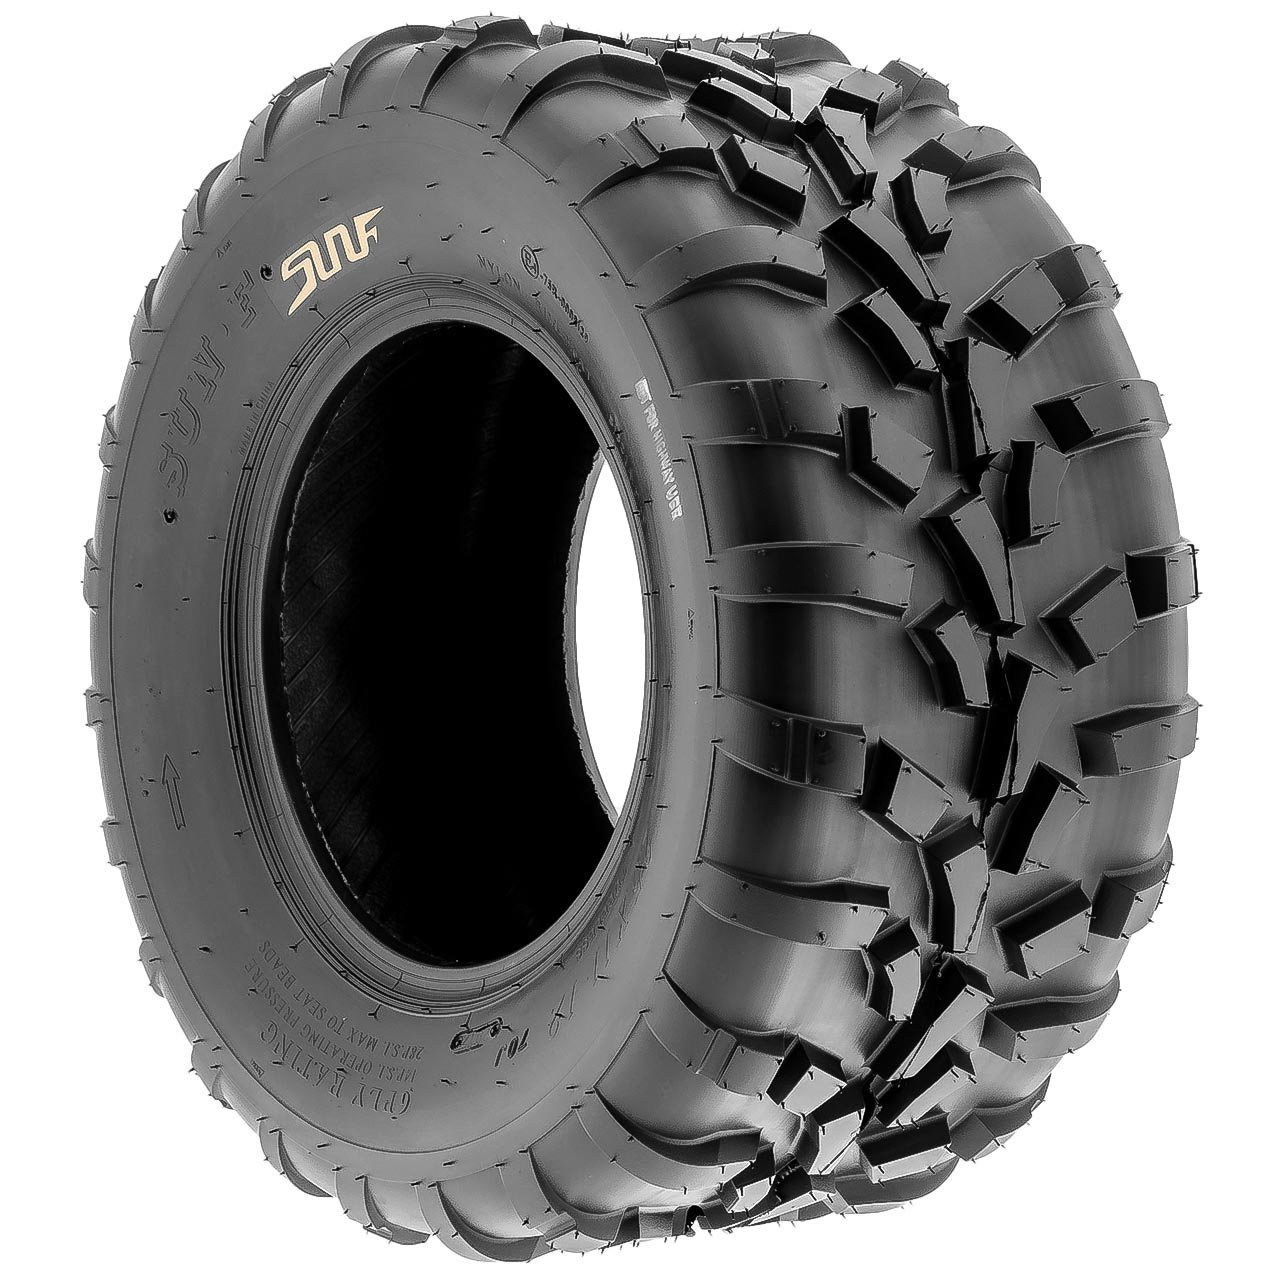 Pair of 2 SunF 25x11-12 AT-XC ATV/UTV Off-Road Tires , 6PR , Directional Knobby Tread | A010 by SunF (Image #5)